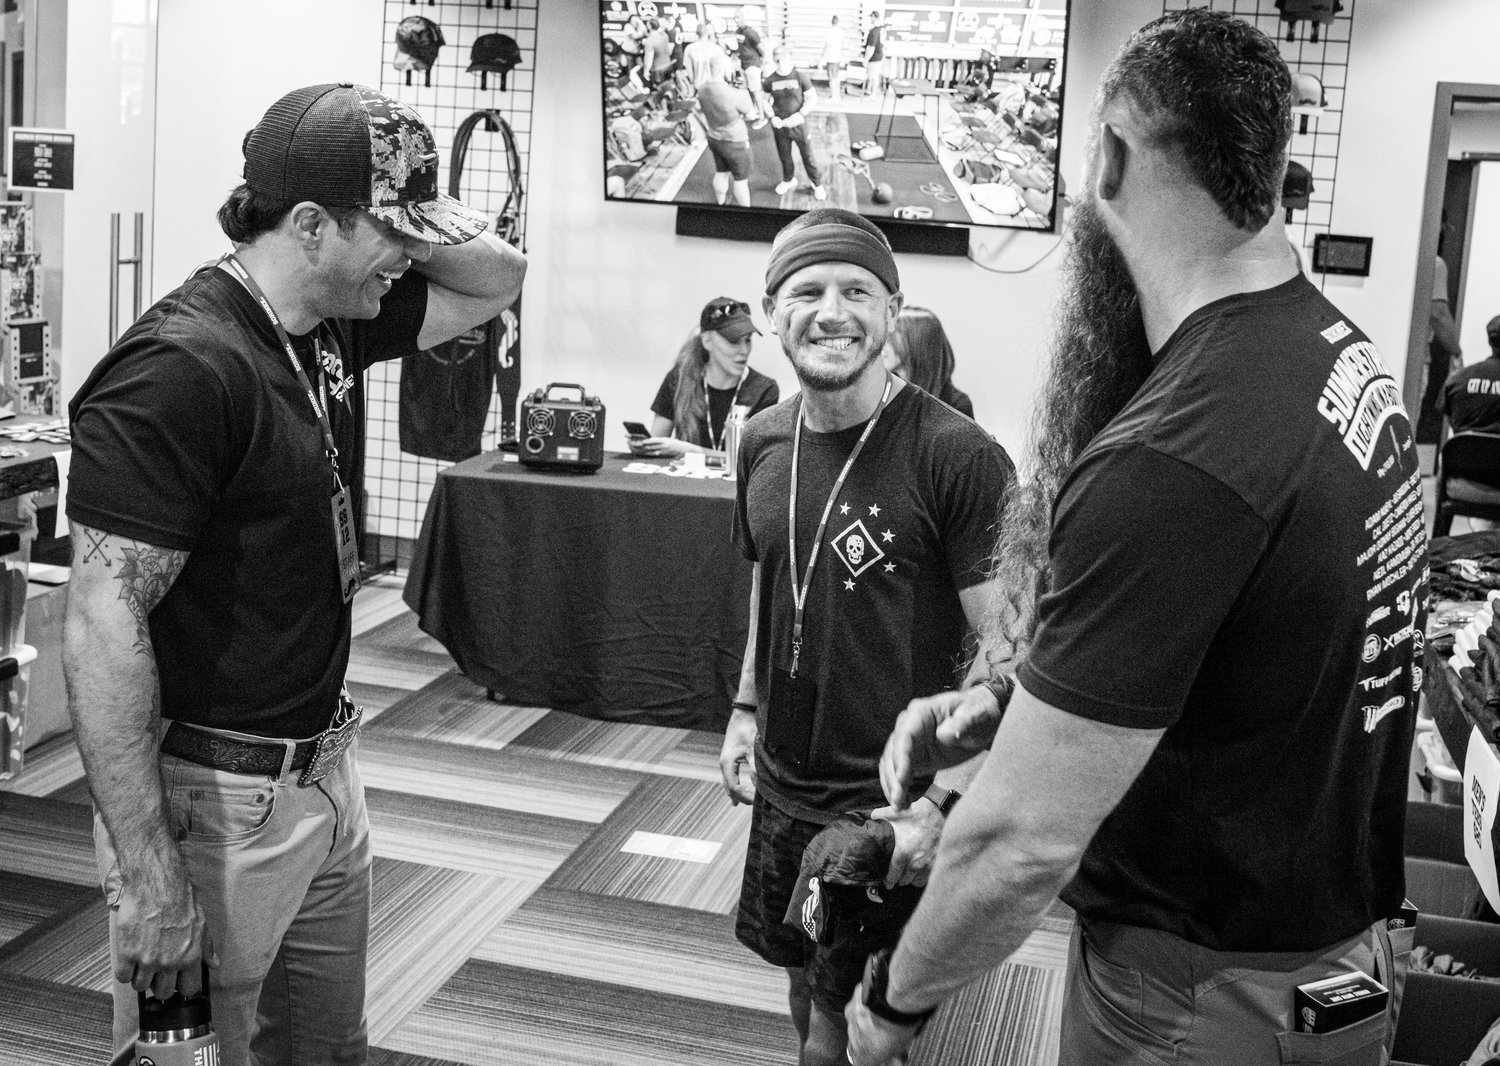 Brady and Bert Sorin with Kyle Carpenter (Instagram: @chiksdigscars), MOH Recipient.